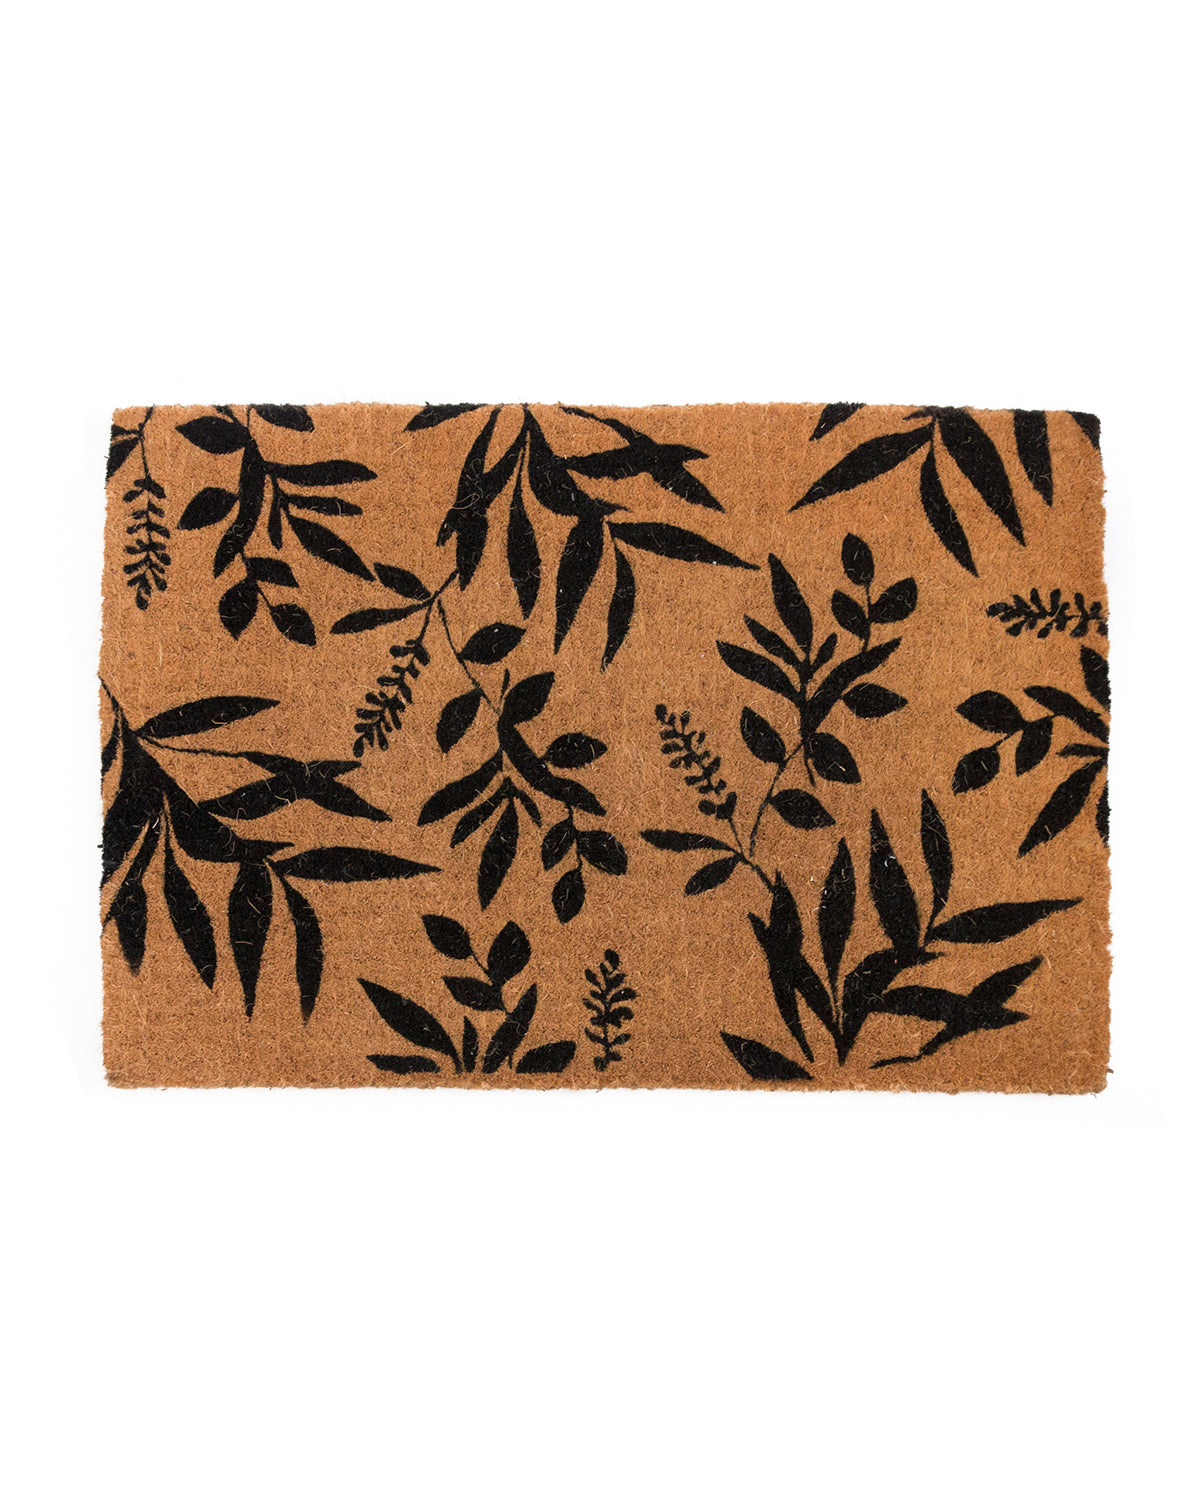 All Over Floral Doormat